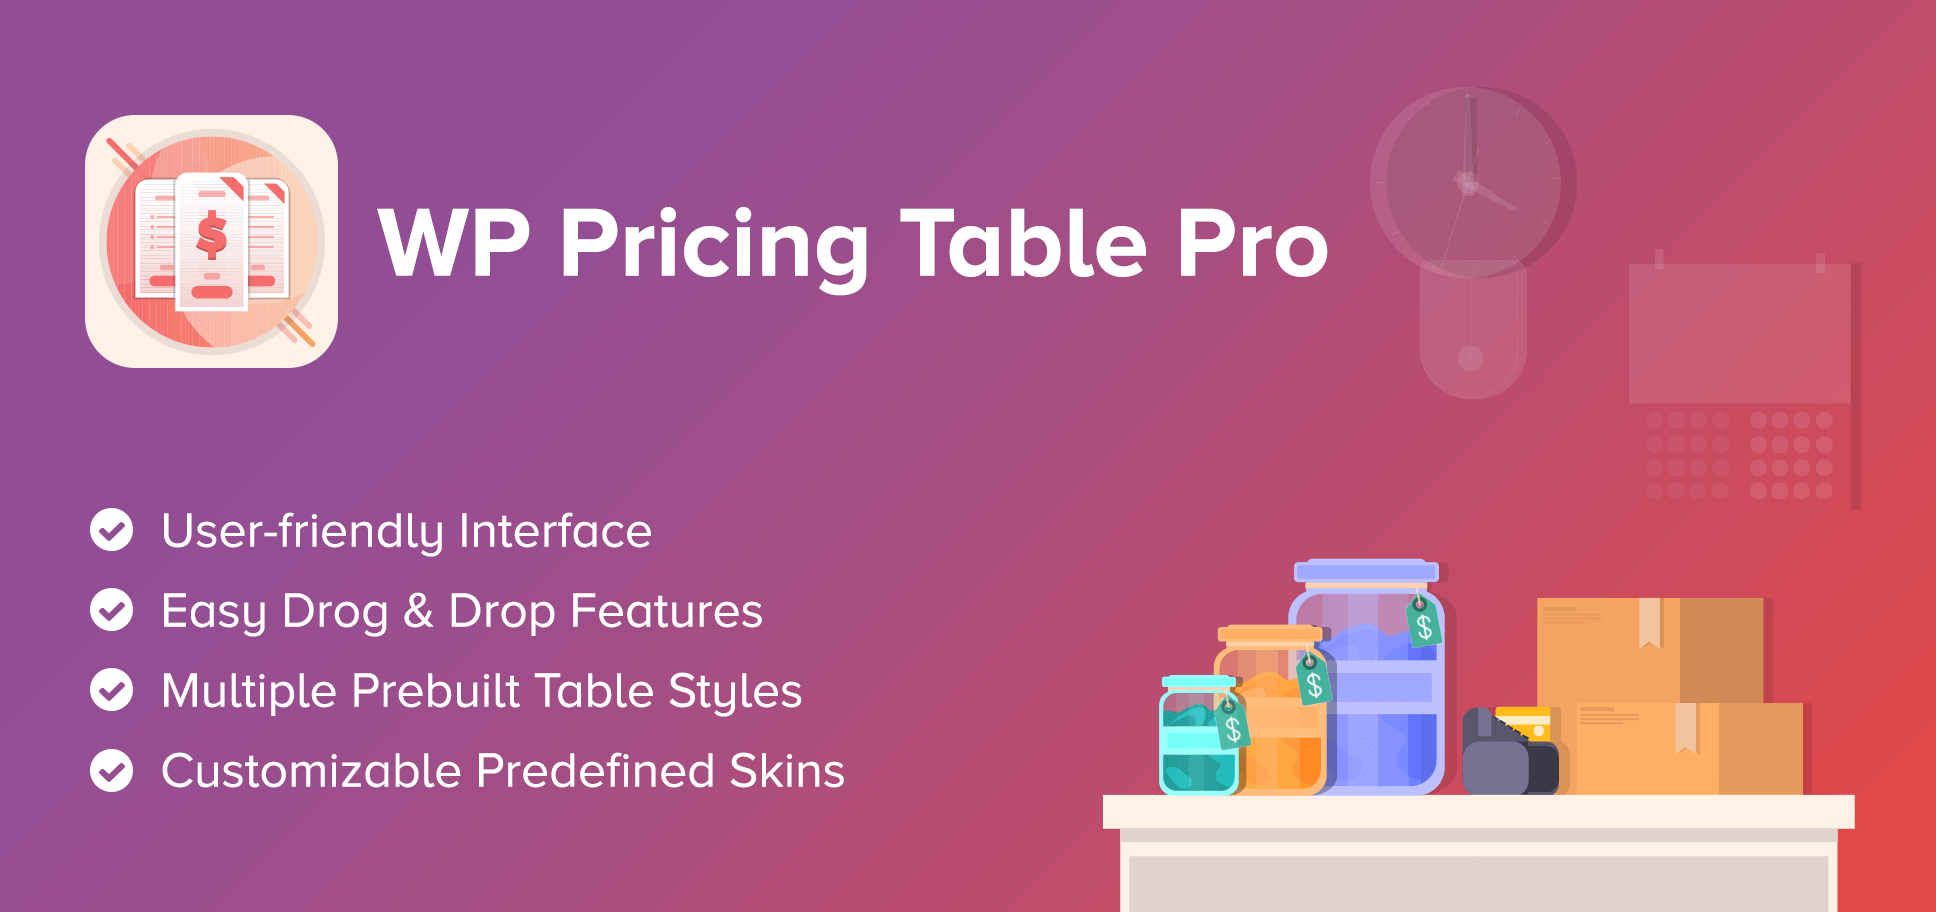 WP Pricing Table Pro – The Best Pricing Table Builder Plugin for WordPress